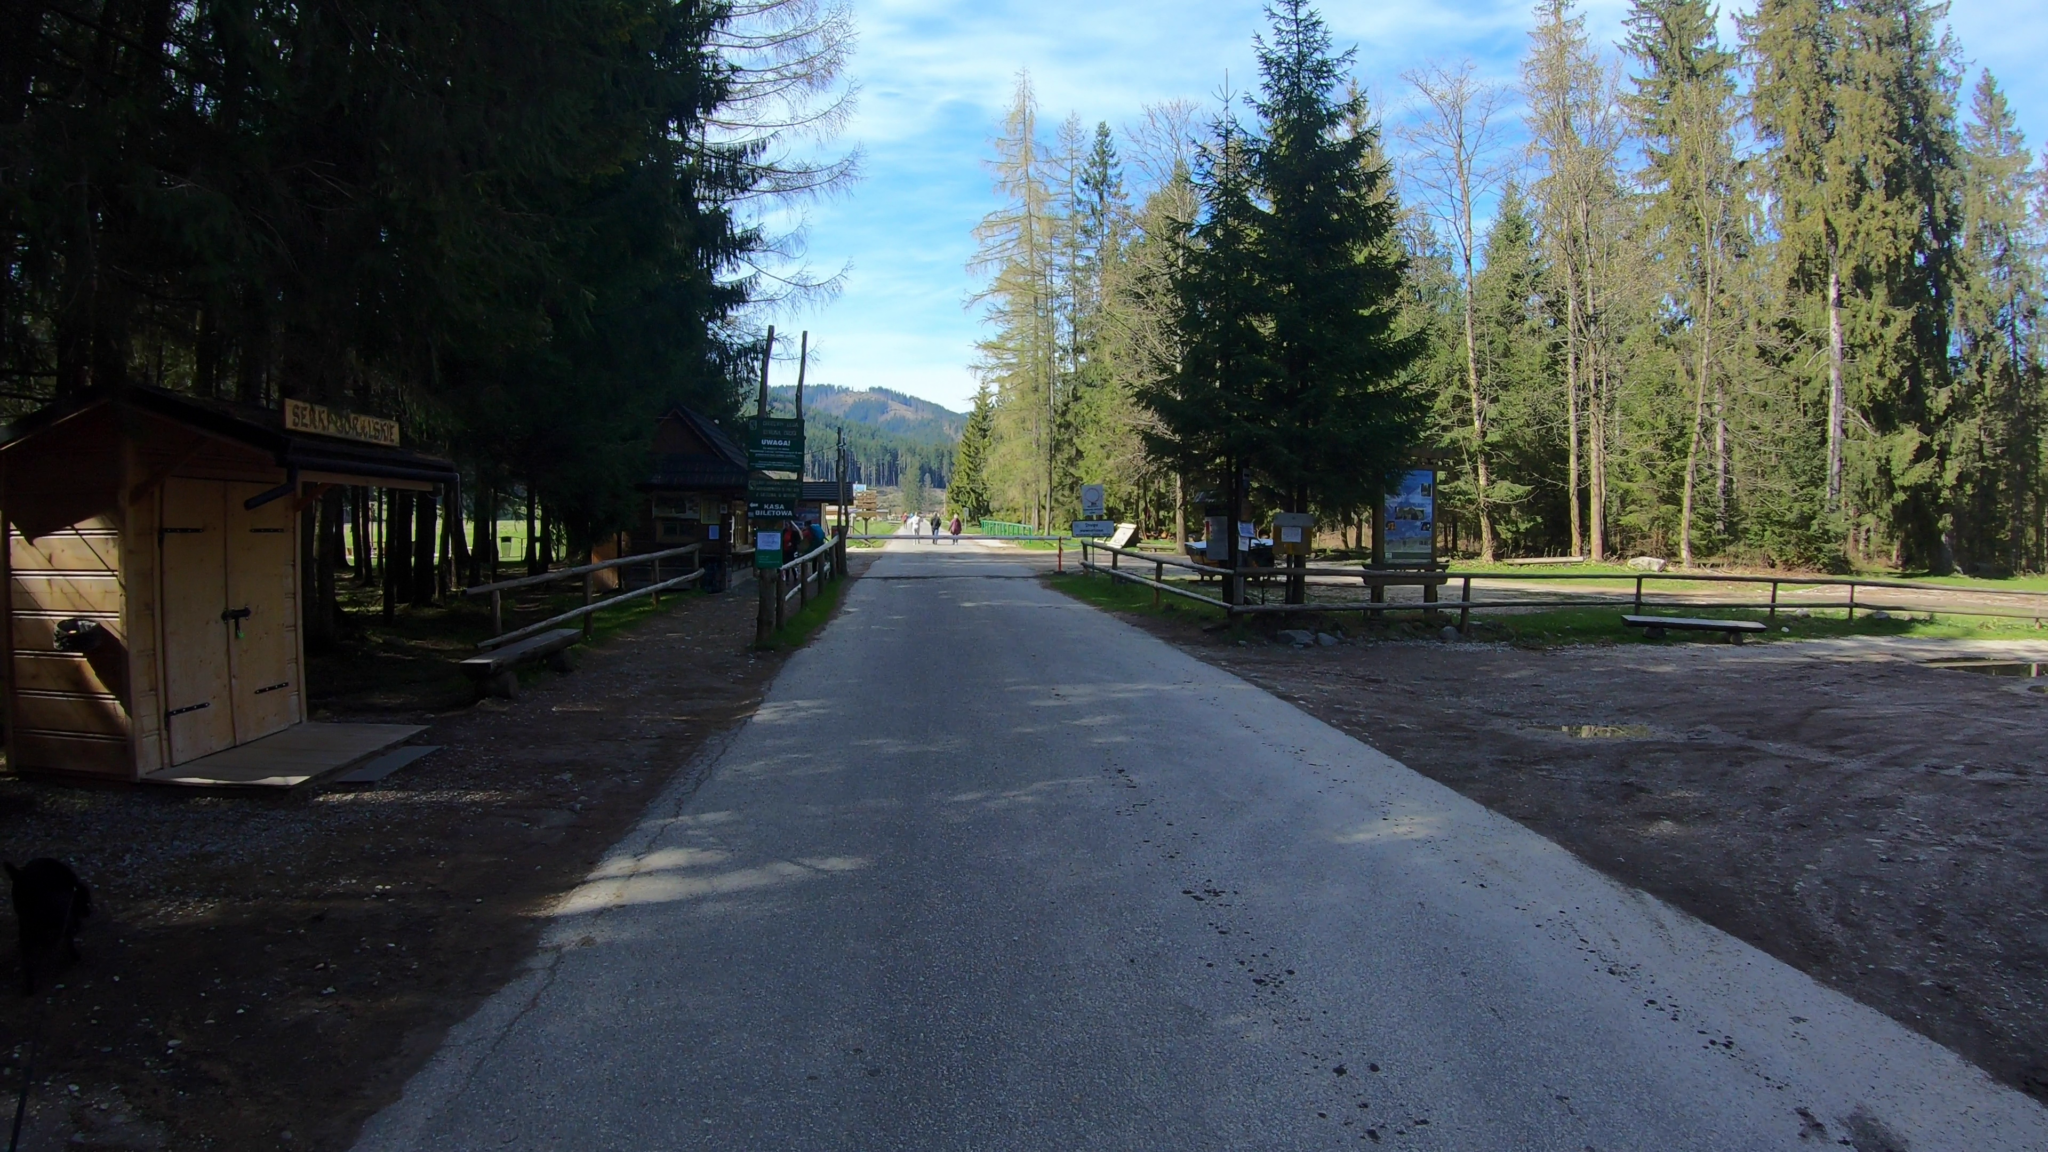 Chocholowska valley enterance